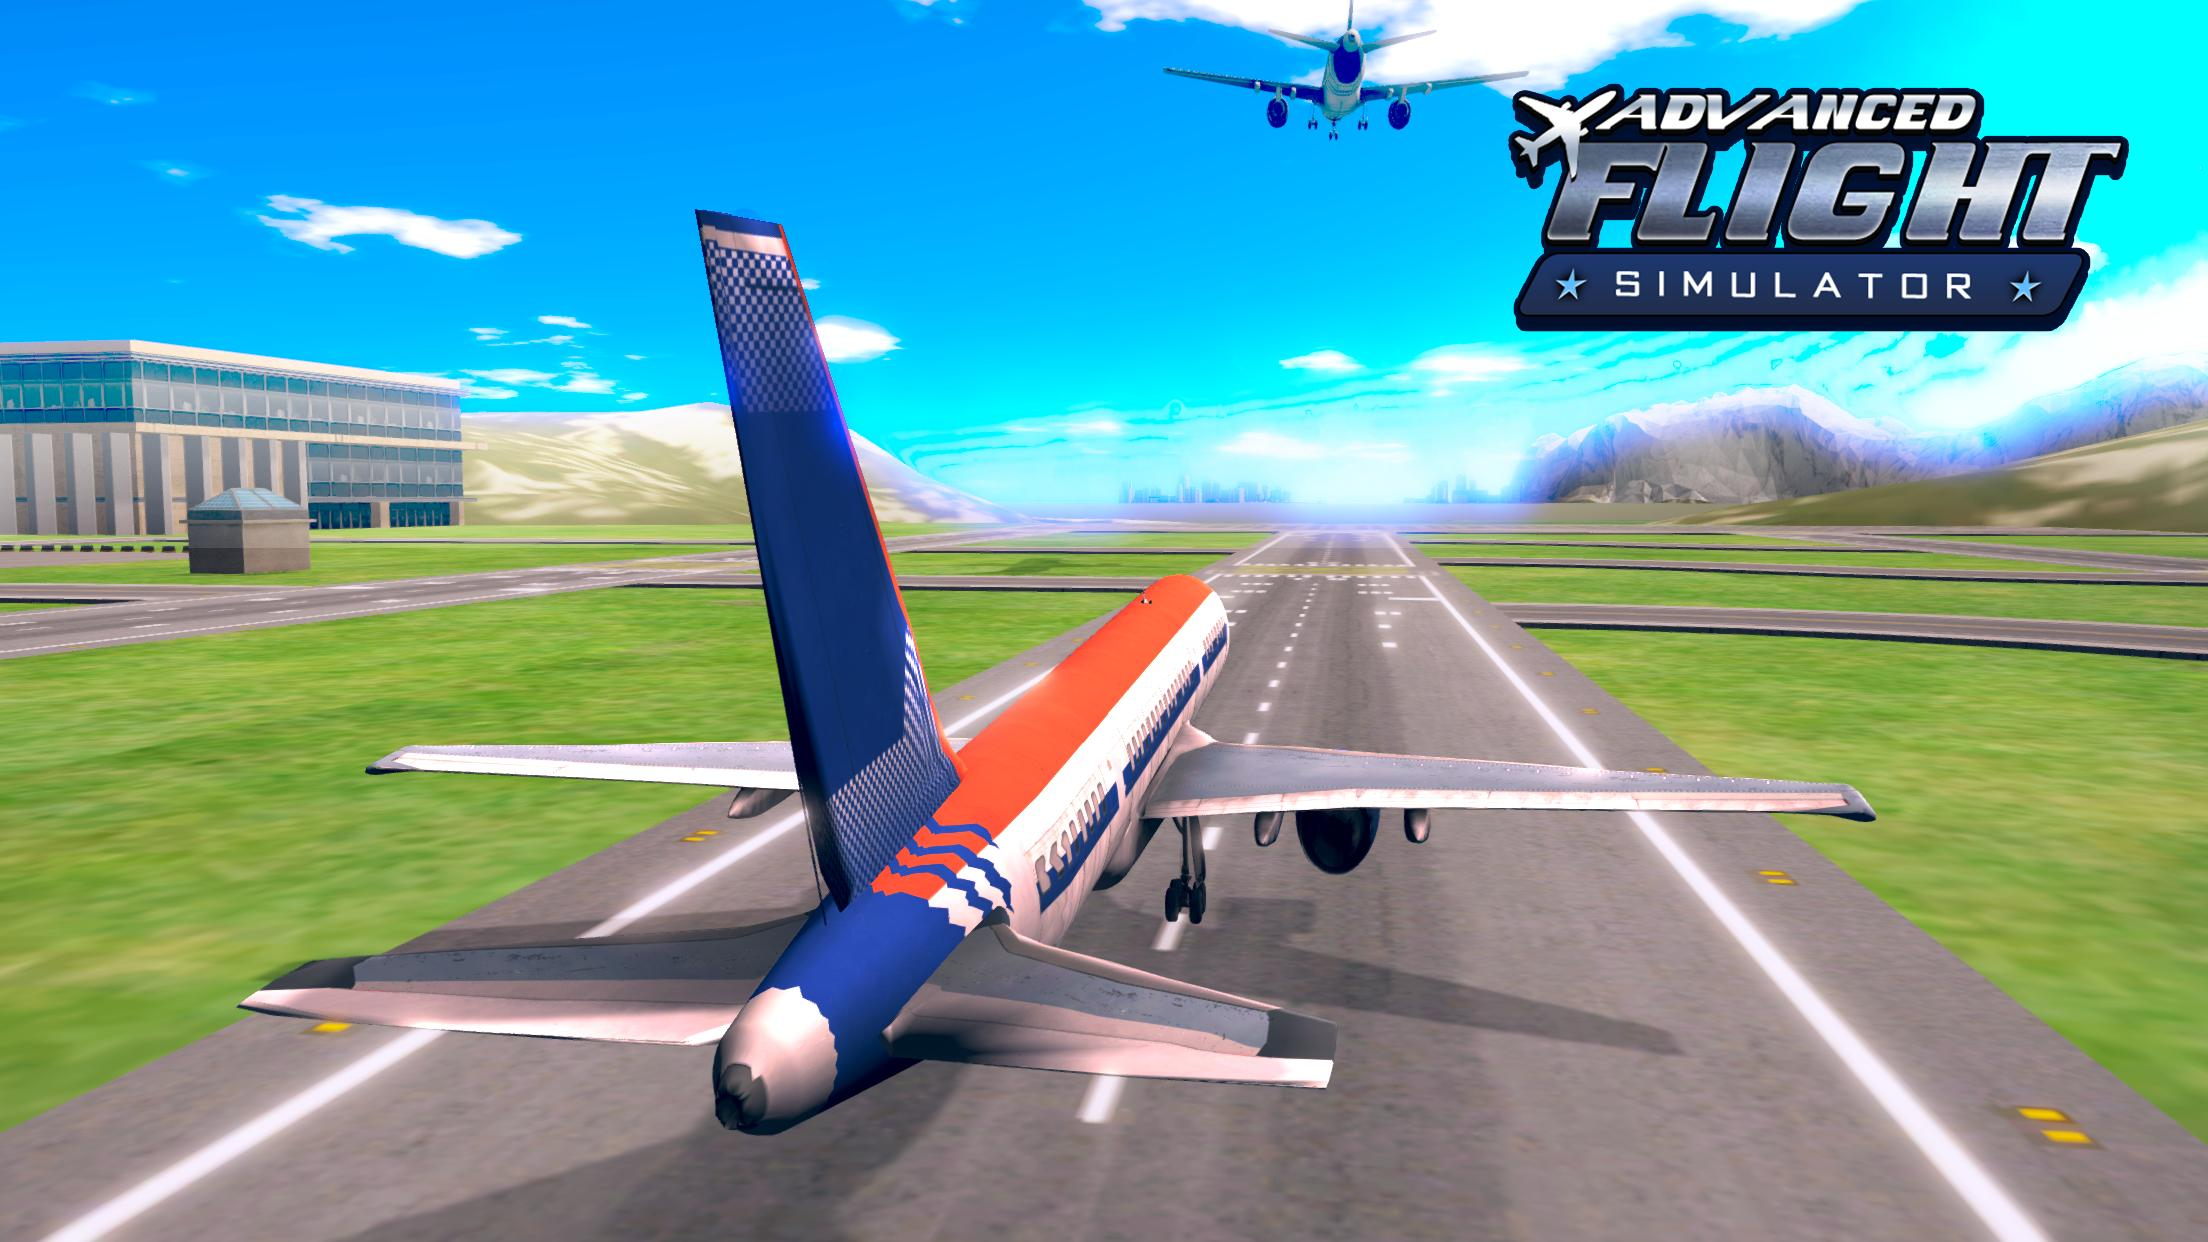 Airplane Real Flight Simulator 2020 Plane Games 5.4 Screenshot 9